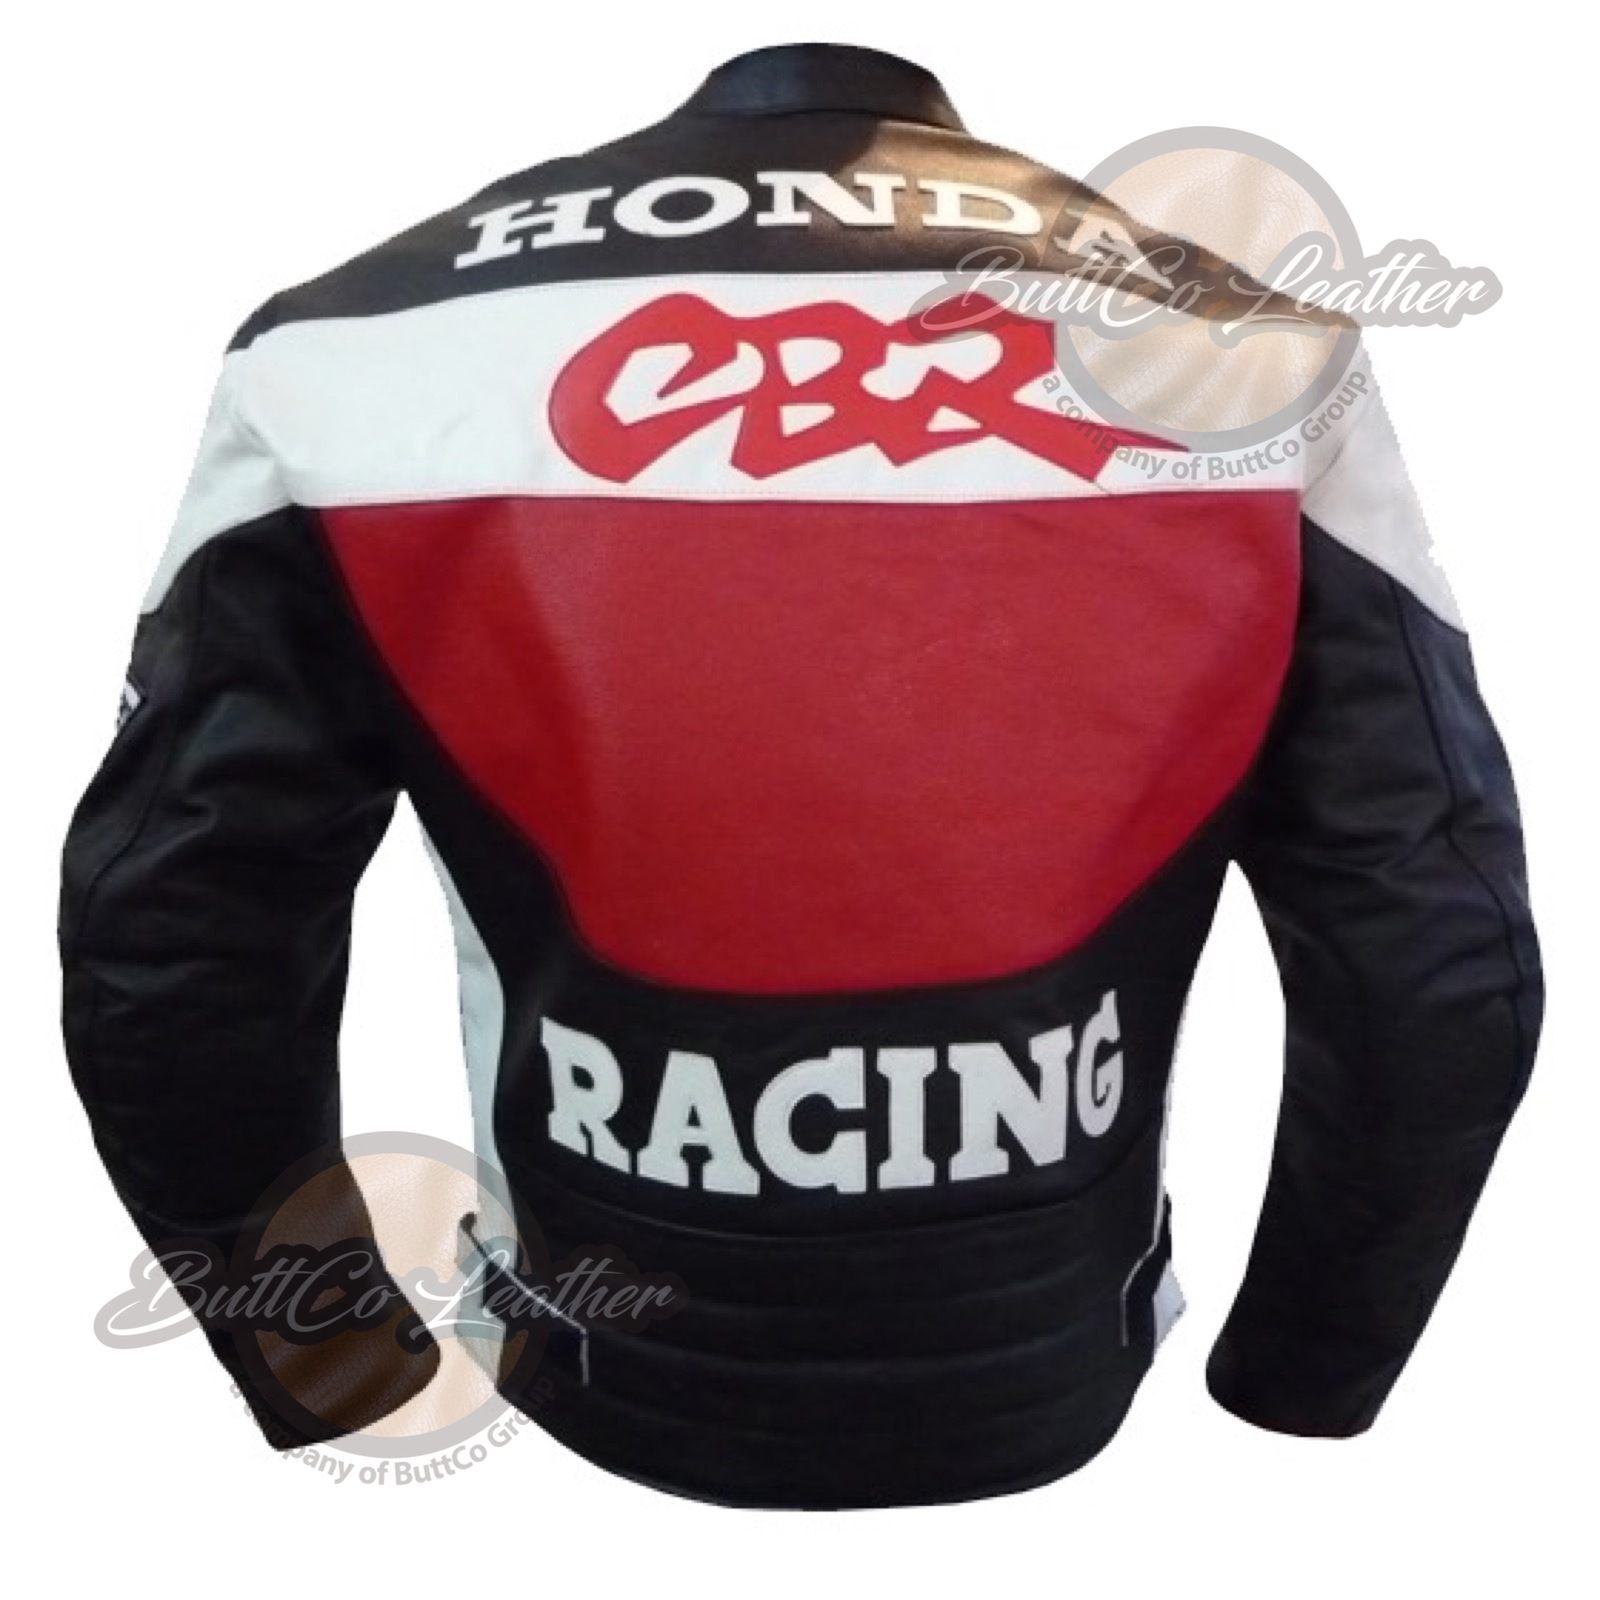 Honda CBR Motorcycle Racing Gear back